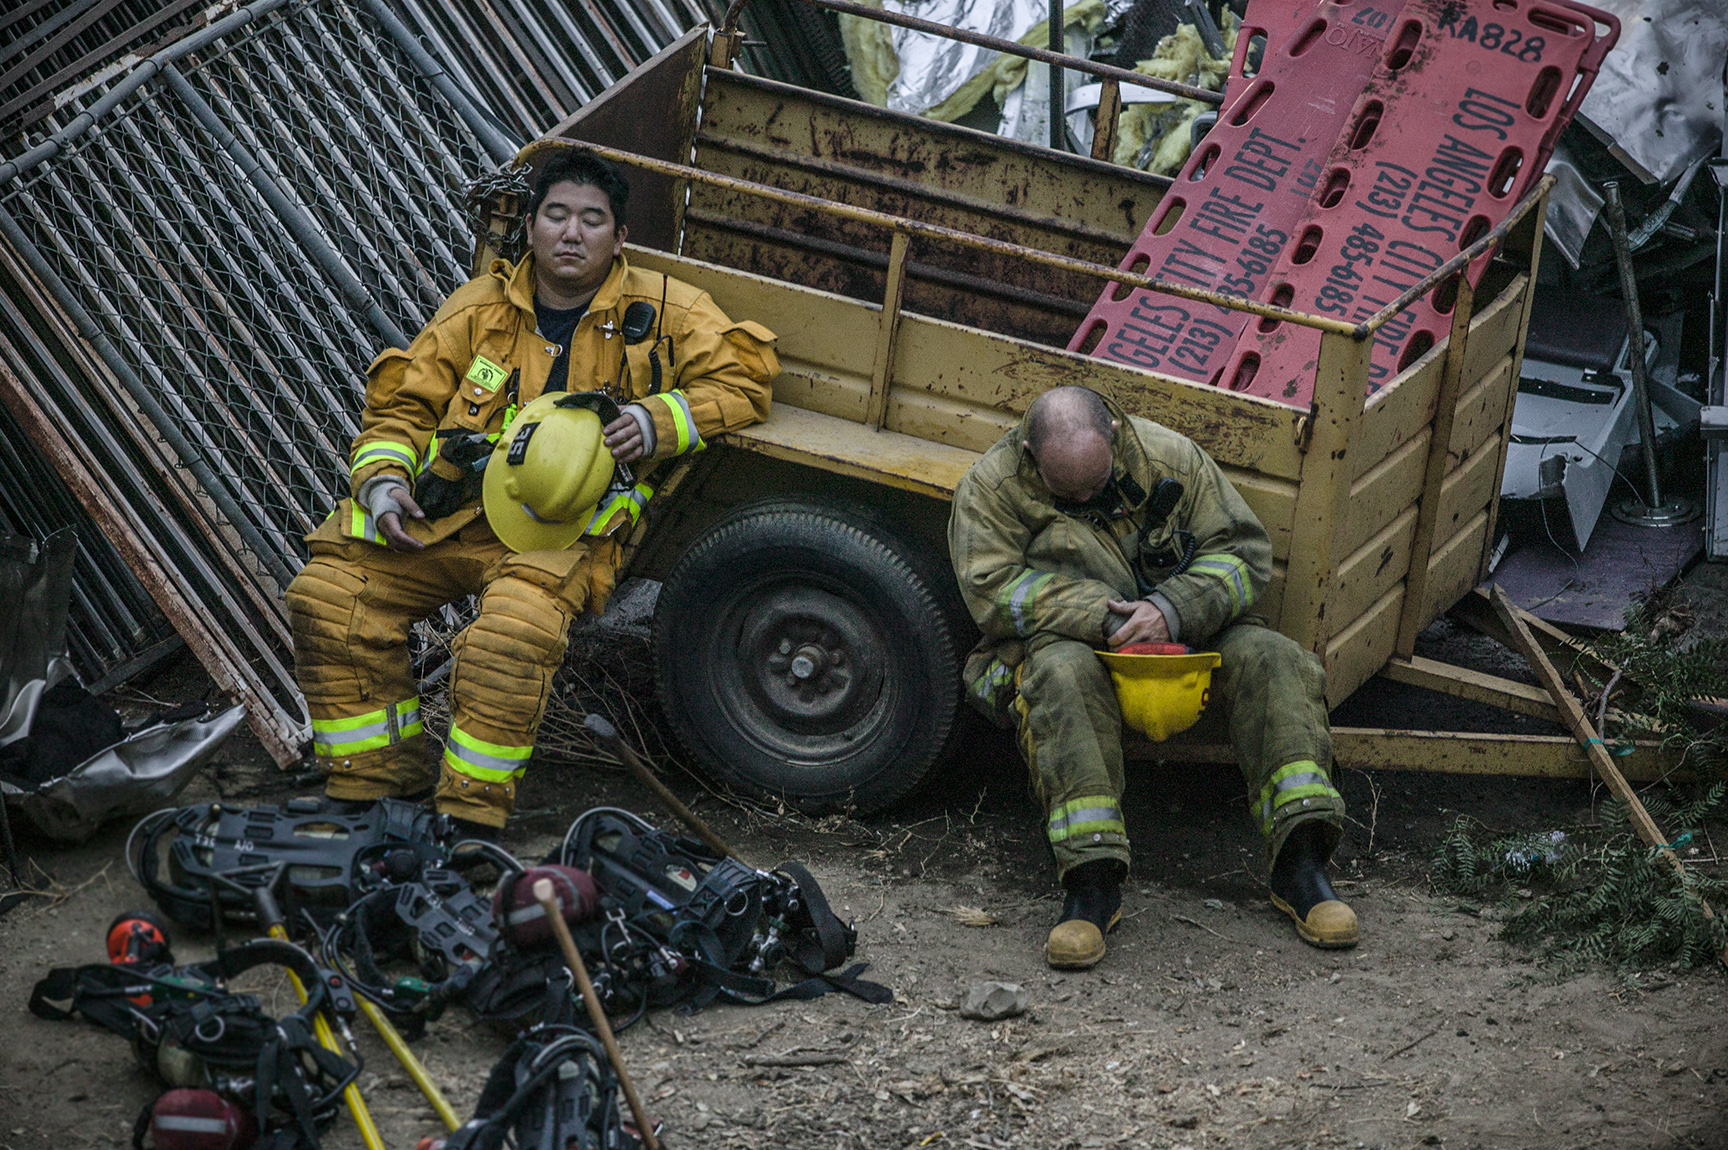 Exhausted firefighters find a moment of rest at the scene of a deadly train crash where 25 people lost their lives.